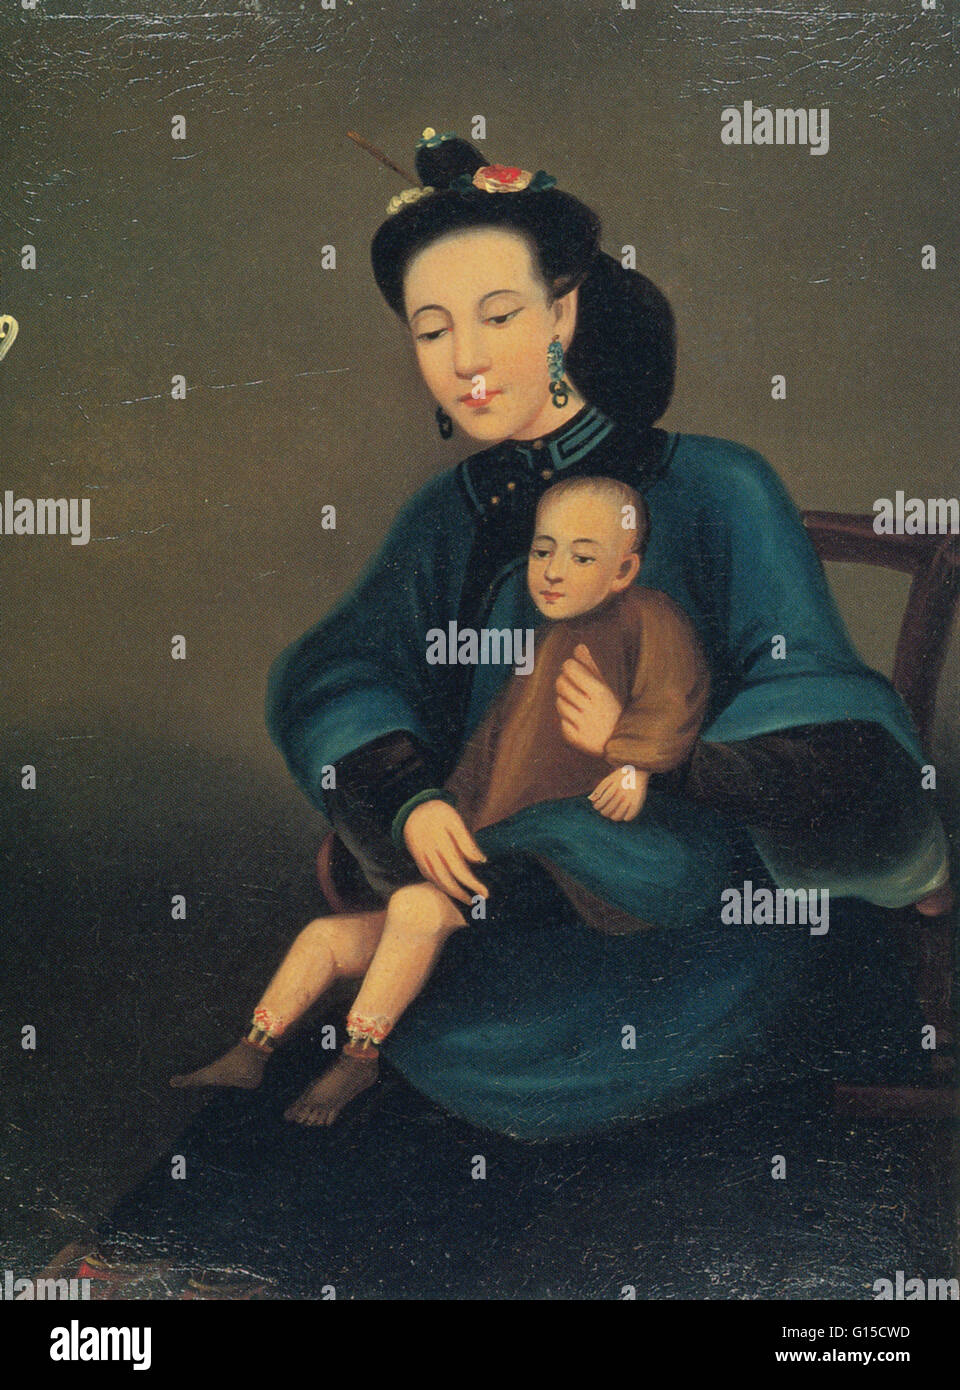 Portrayal of a mother holding a child afflicted with gangrene of the lower legs, by Lam Qua (1801-1860). - Stock Image